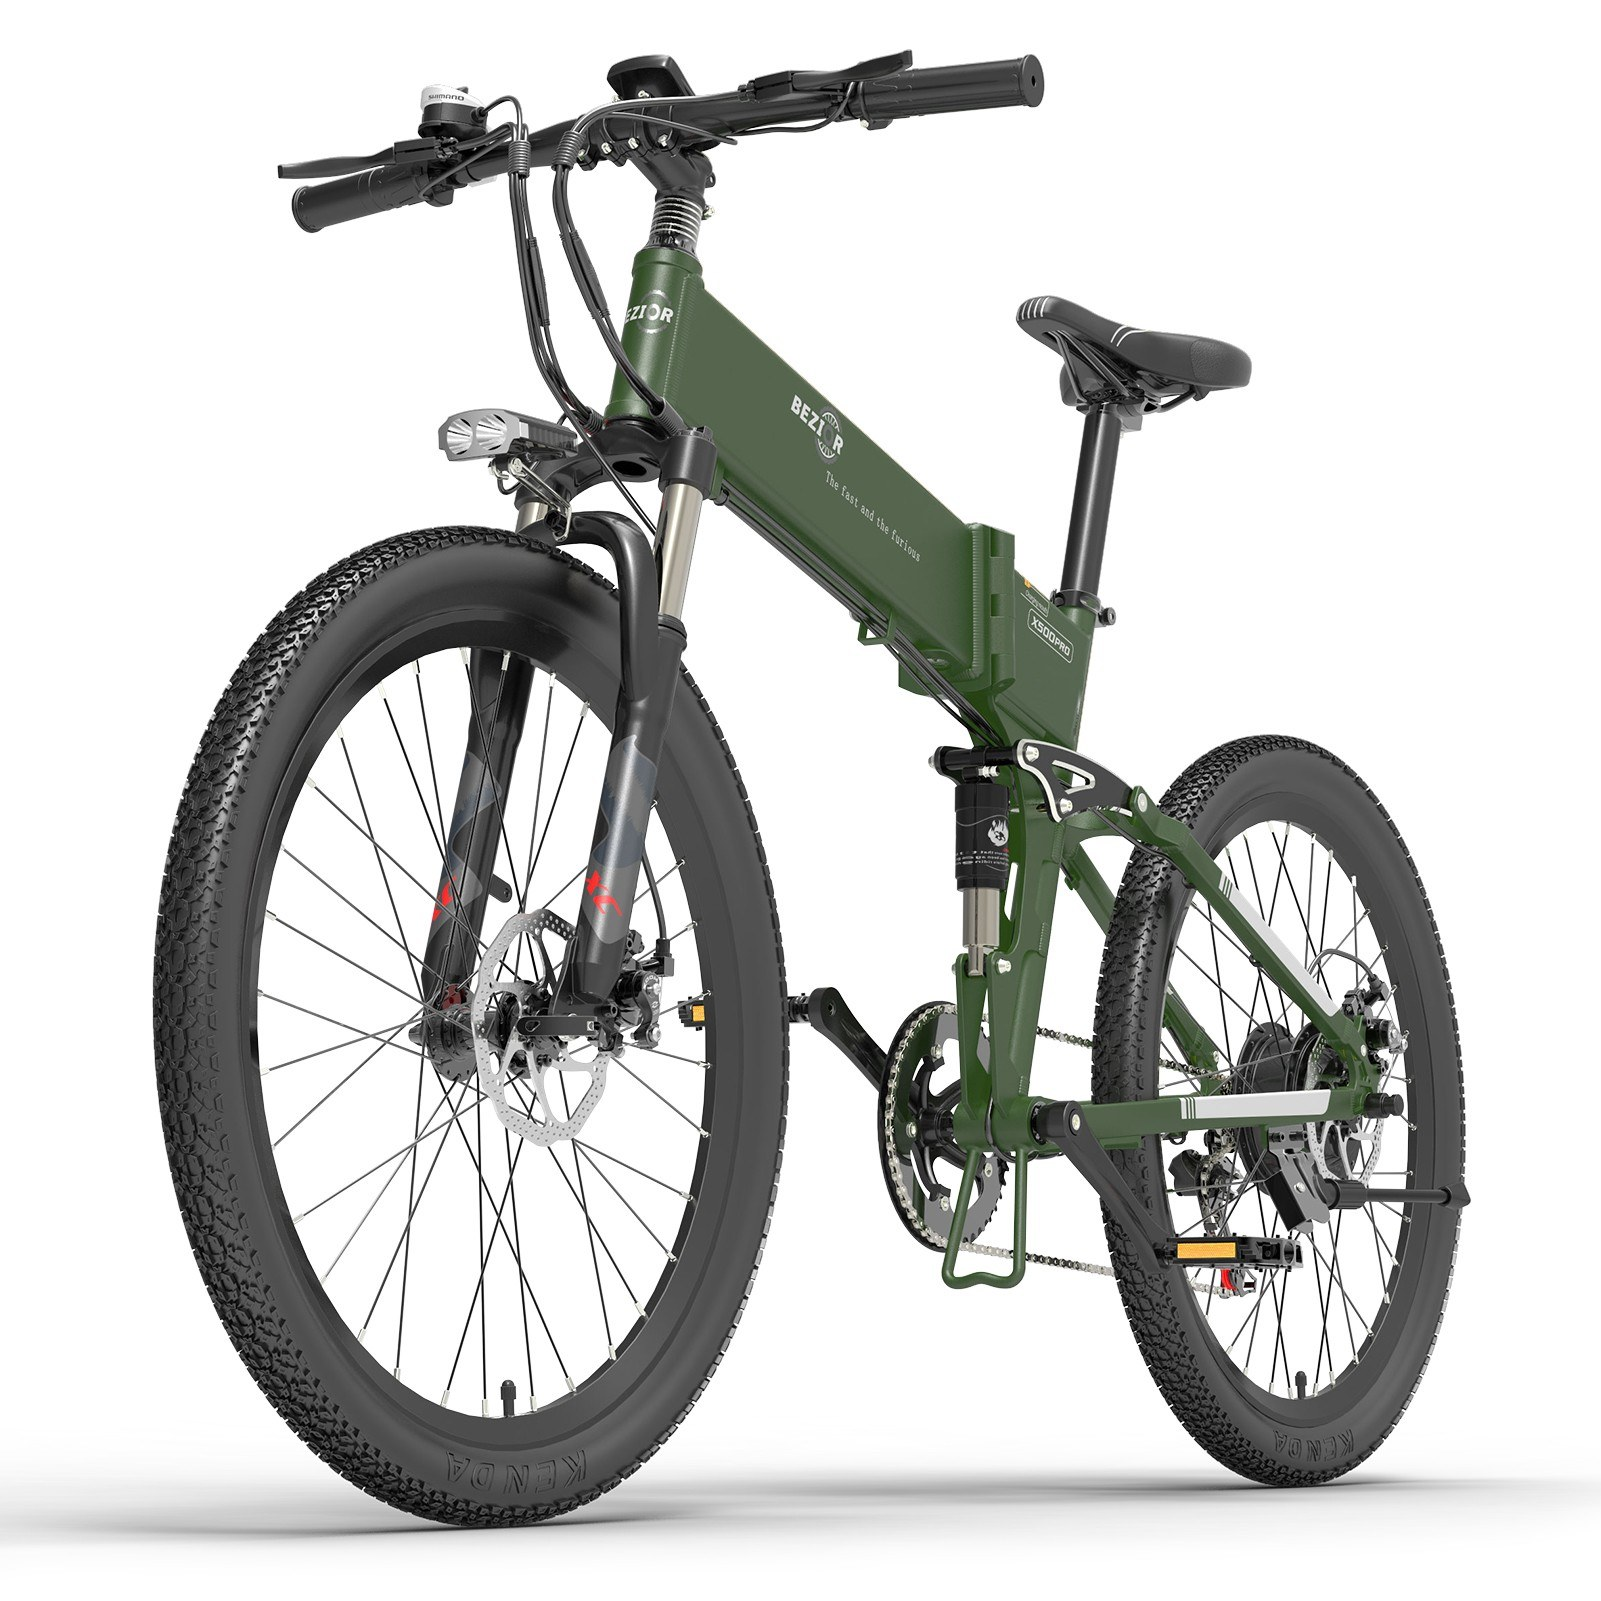 tomtop.com - [EU Warehouse] 43% OFF BEZIOR X500Pro 500W 26 Inch Folding Power Assist Electric Bicycle, $1070.80 (Inclusive of VAT)